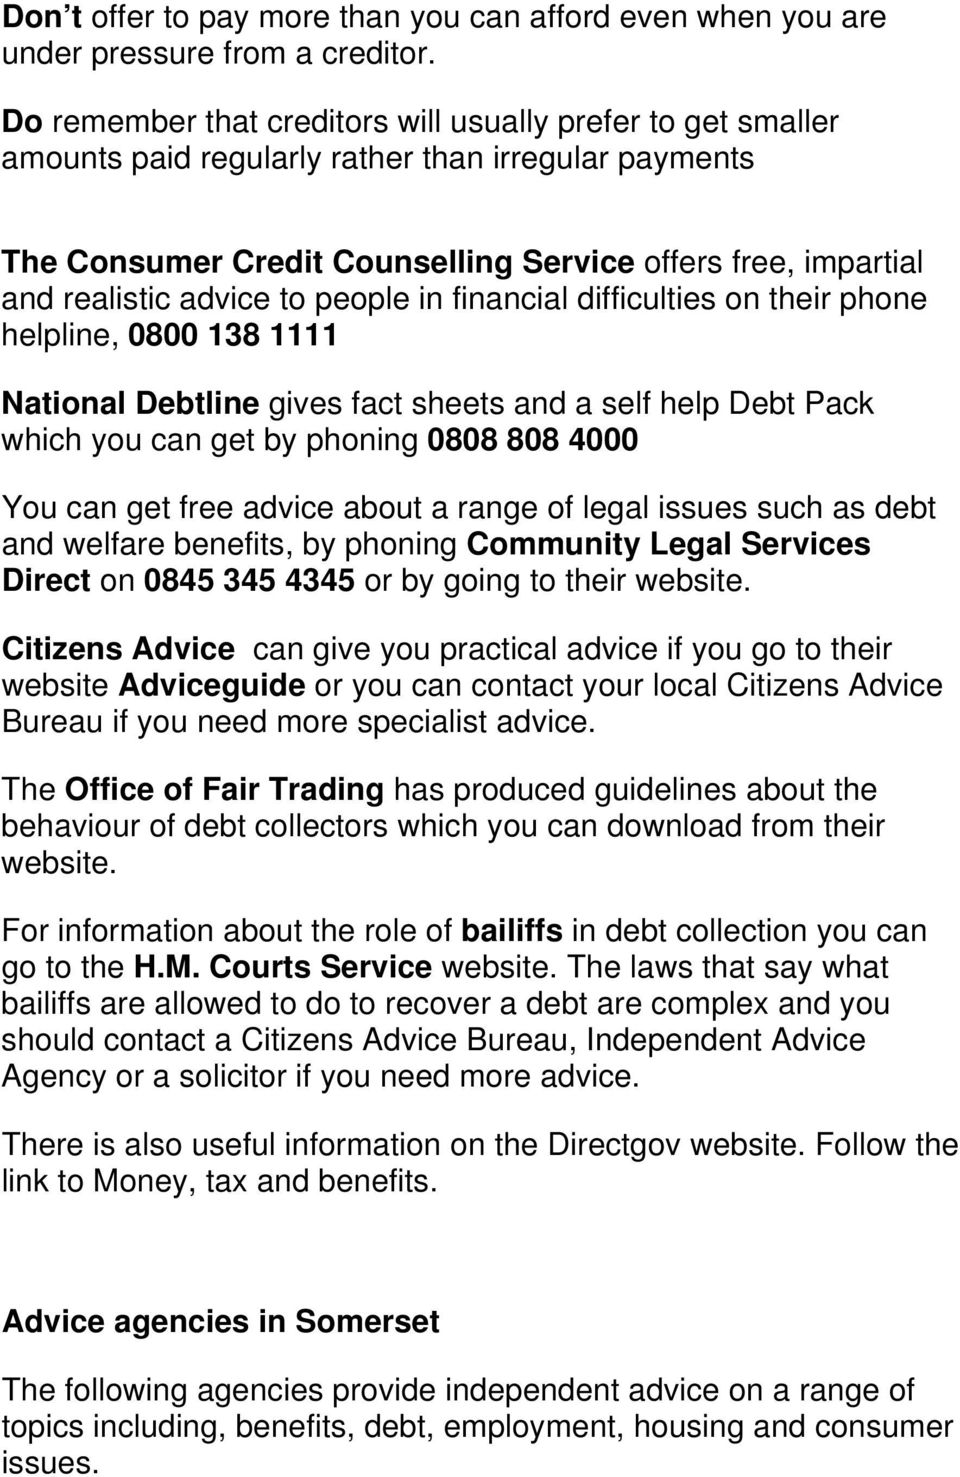 to people in financial difficulties on their phone helpline, 0800 138 1111 National Debtline gives fact sheets and a self help Debt Pack which you can get by phoning 0808 808 4000 You can get free